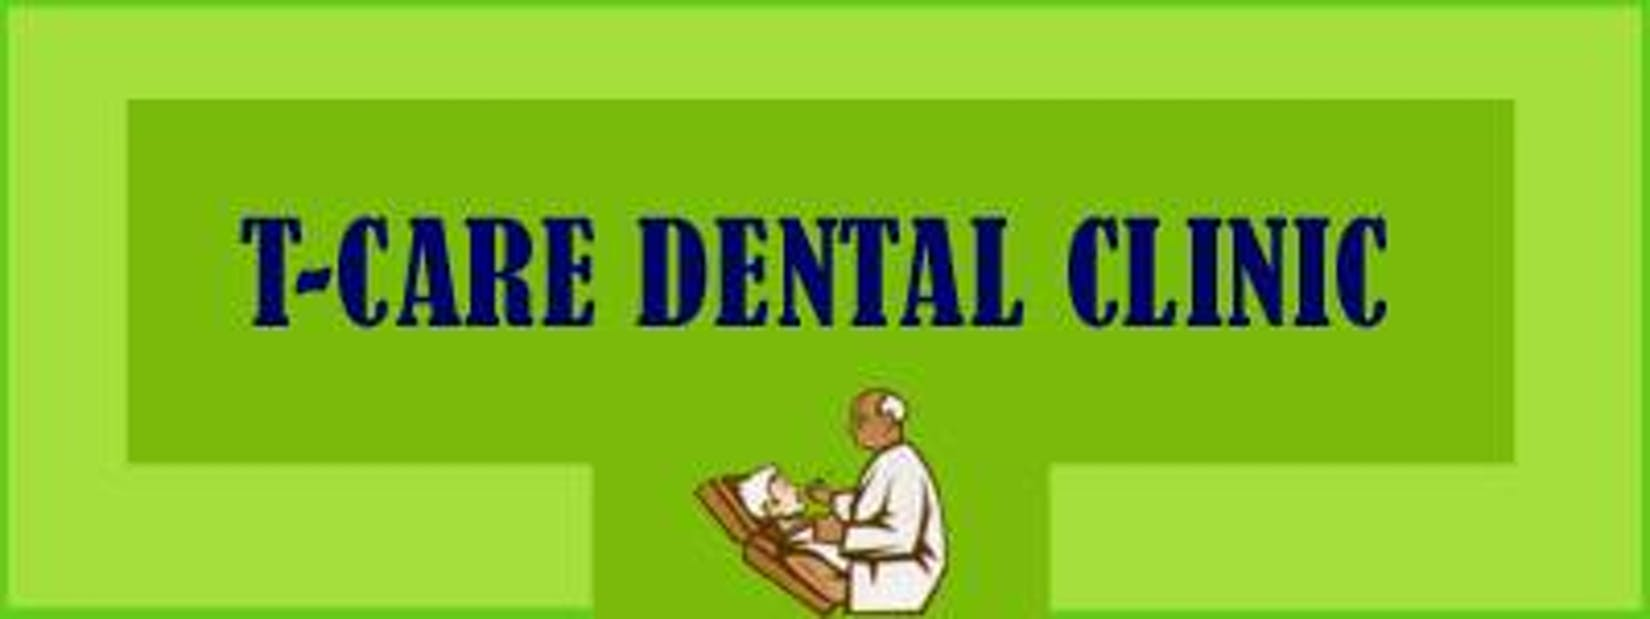 T CARE DENTAL CLINIC | Medical